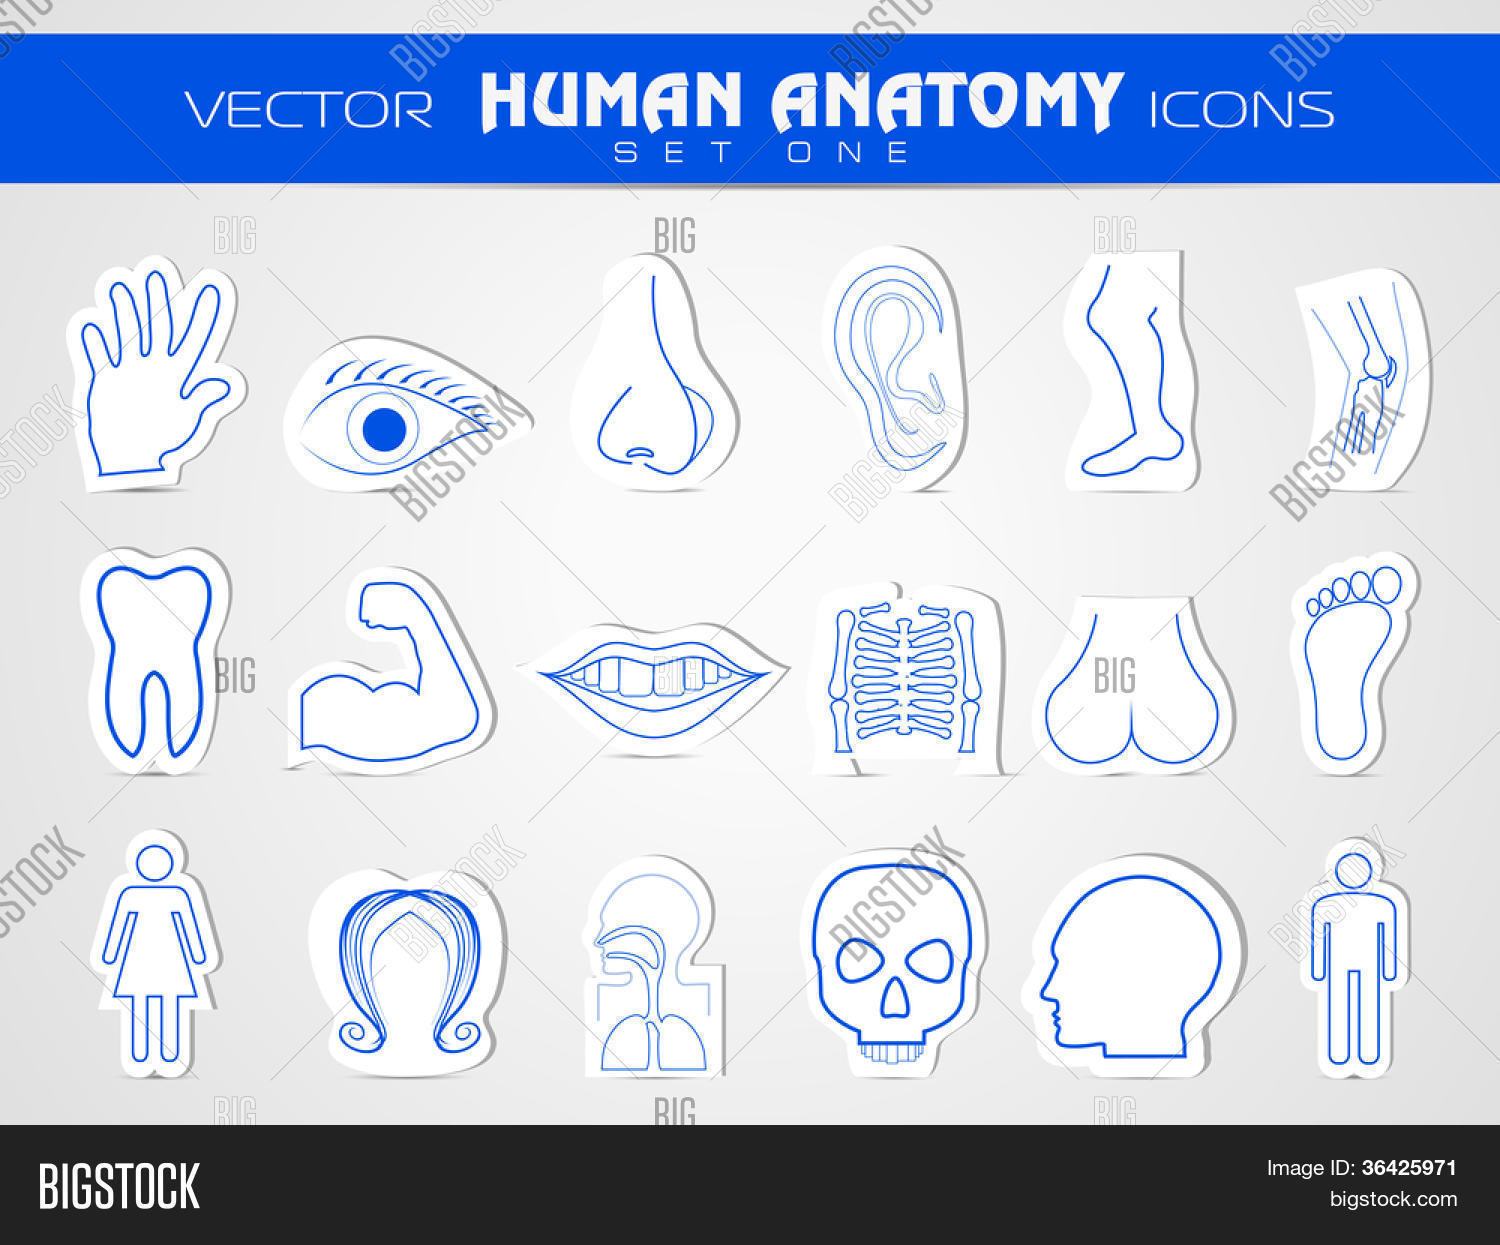 Human Anatomy Website Vector Photo Free Trial Bigstock